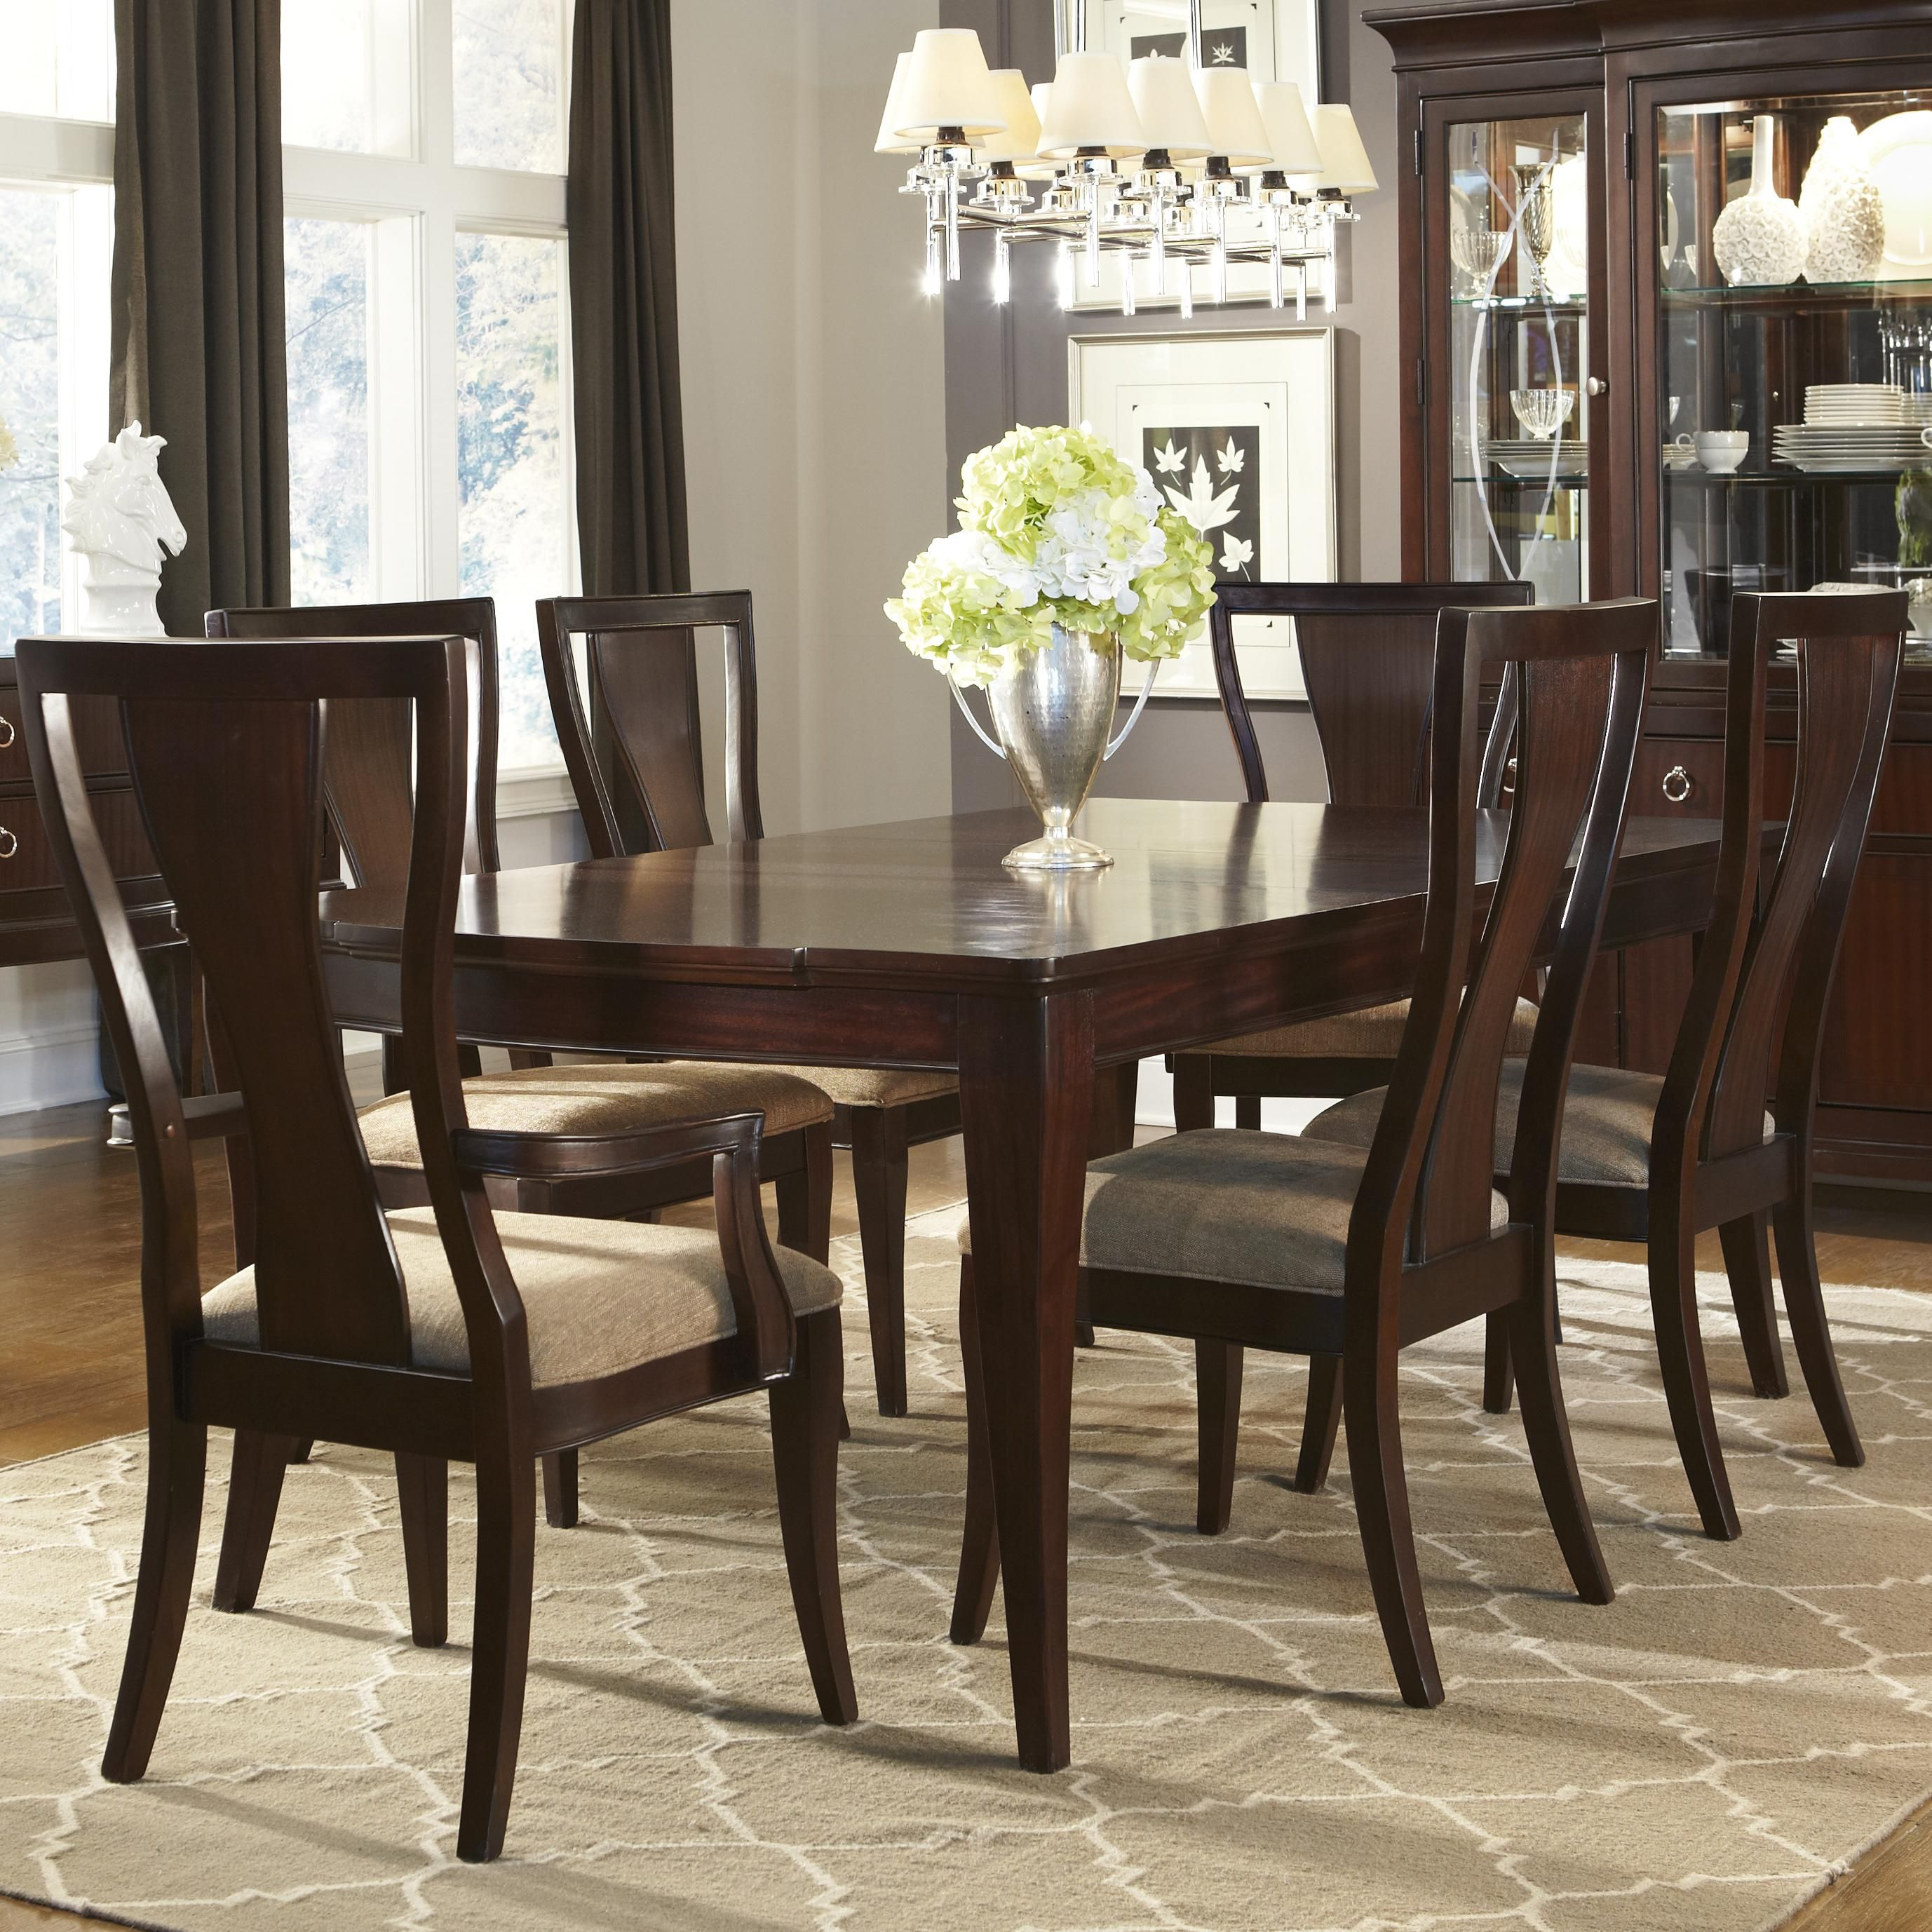 Mennonite Furniture Kitchener 17 Best Images About Furniture On Pinterest French Linens